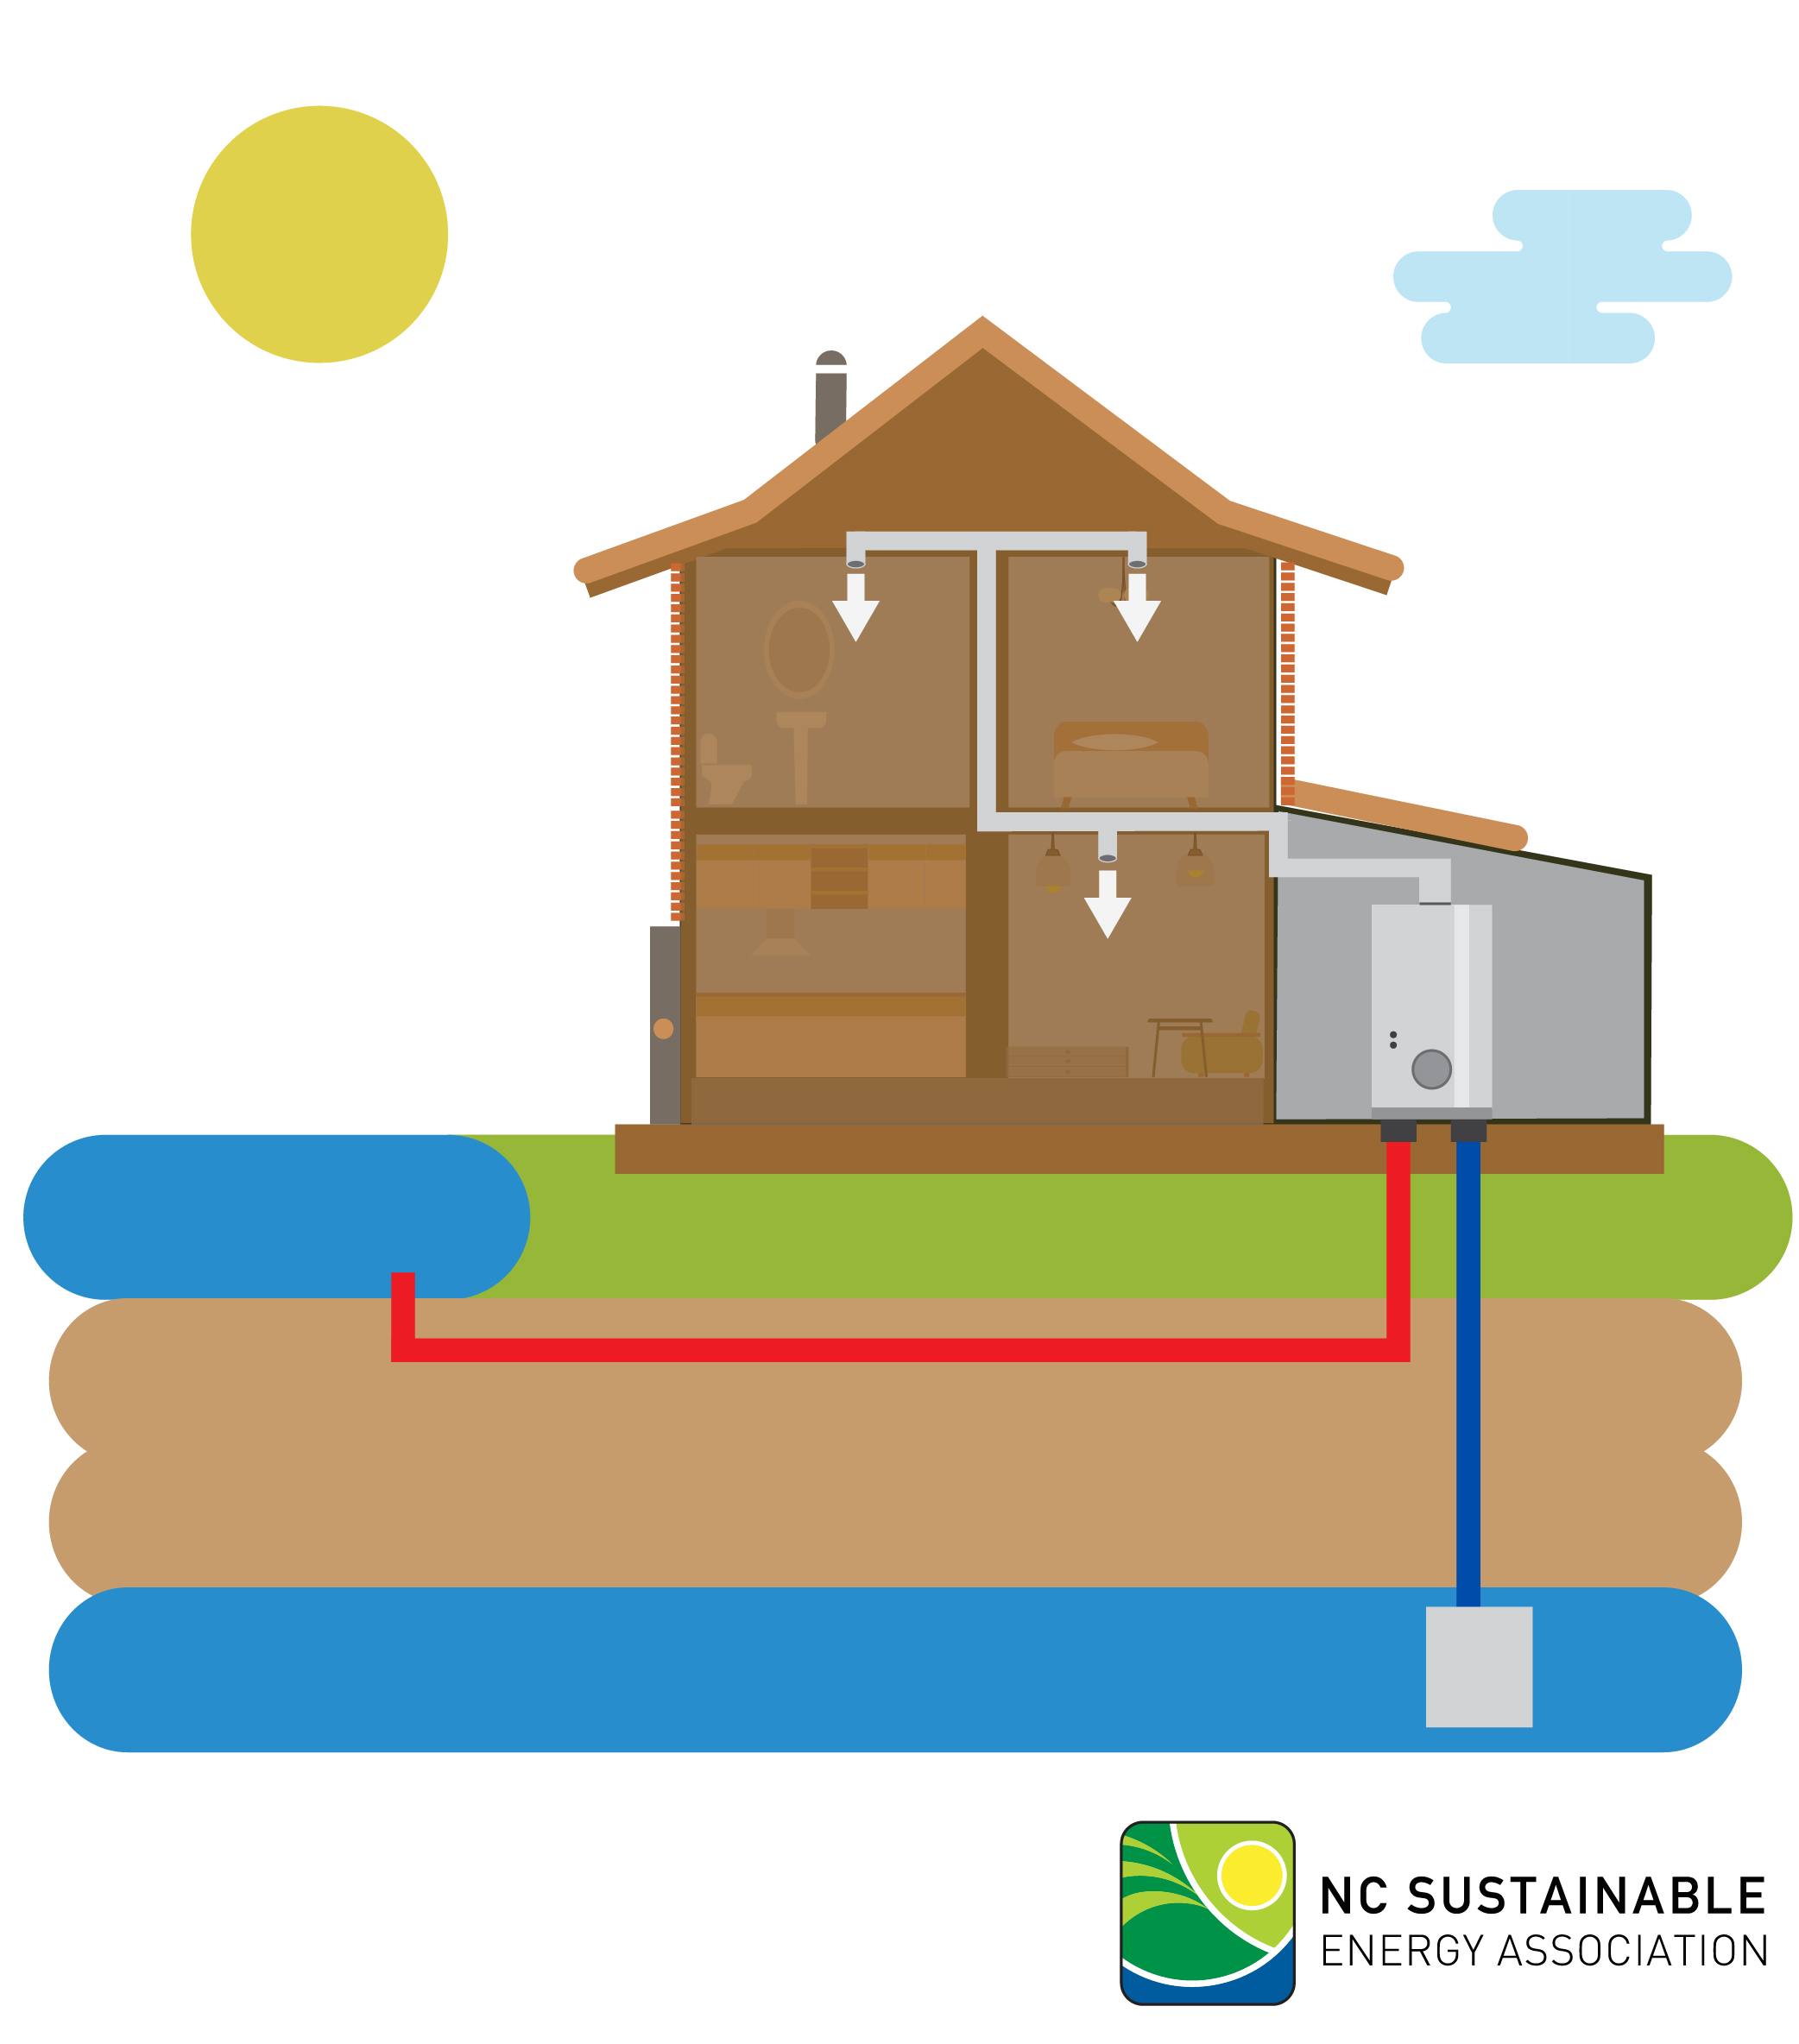 open loop geothermal systems exchange heat by pumping groundwater through  the system directly and without recycling it